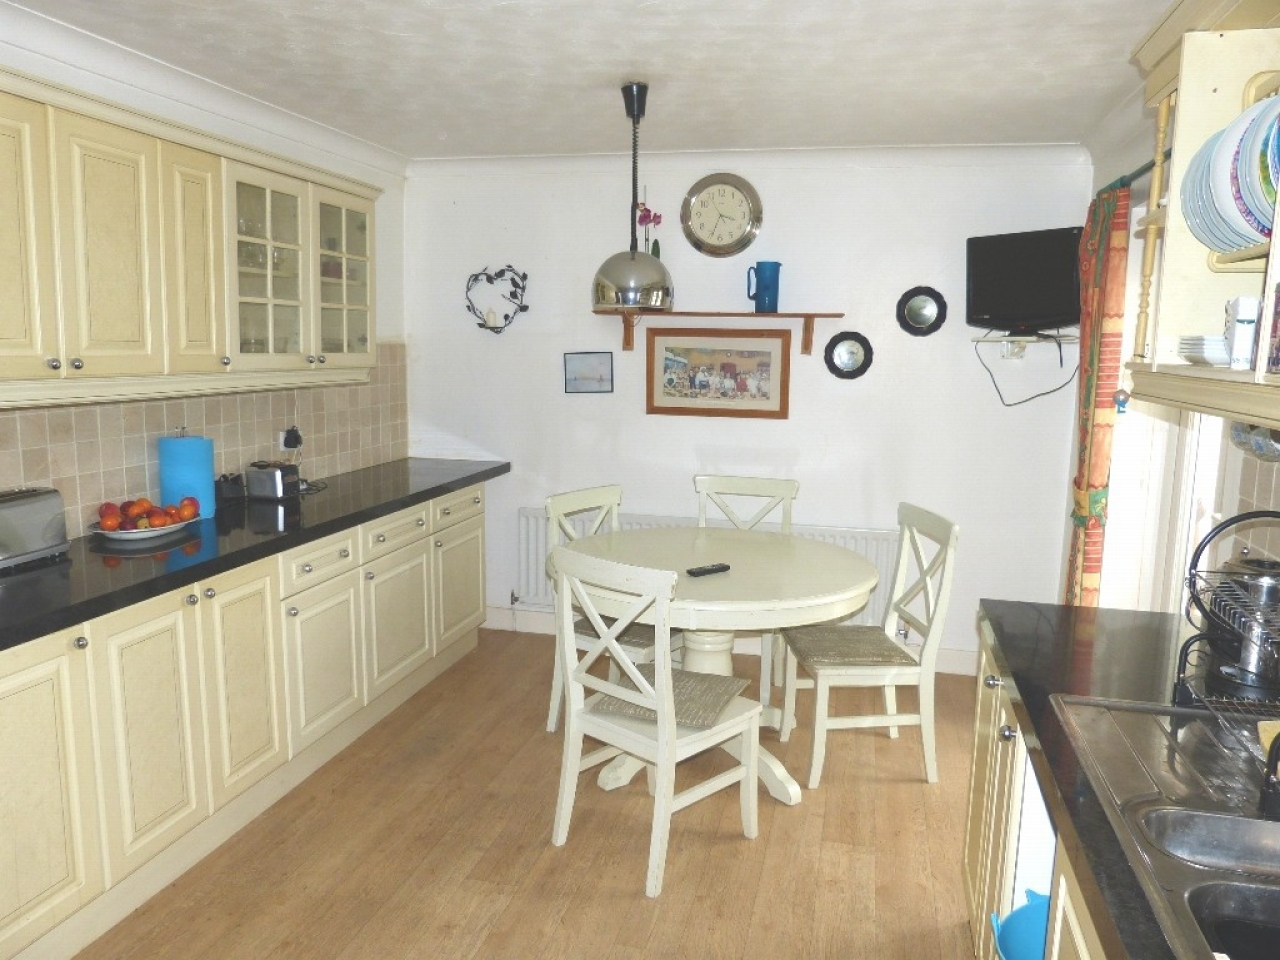 4 bedroom detached bungalow SSTC in Abergele - Photograph 5